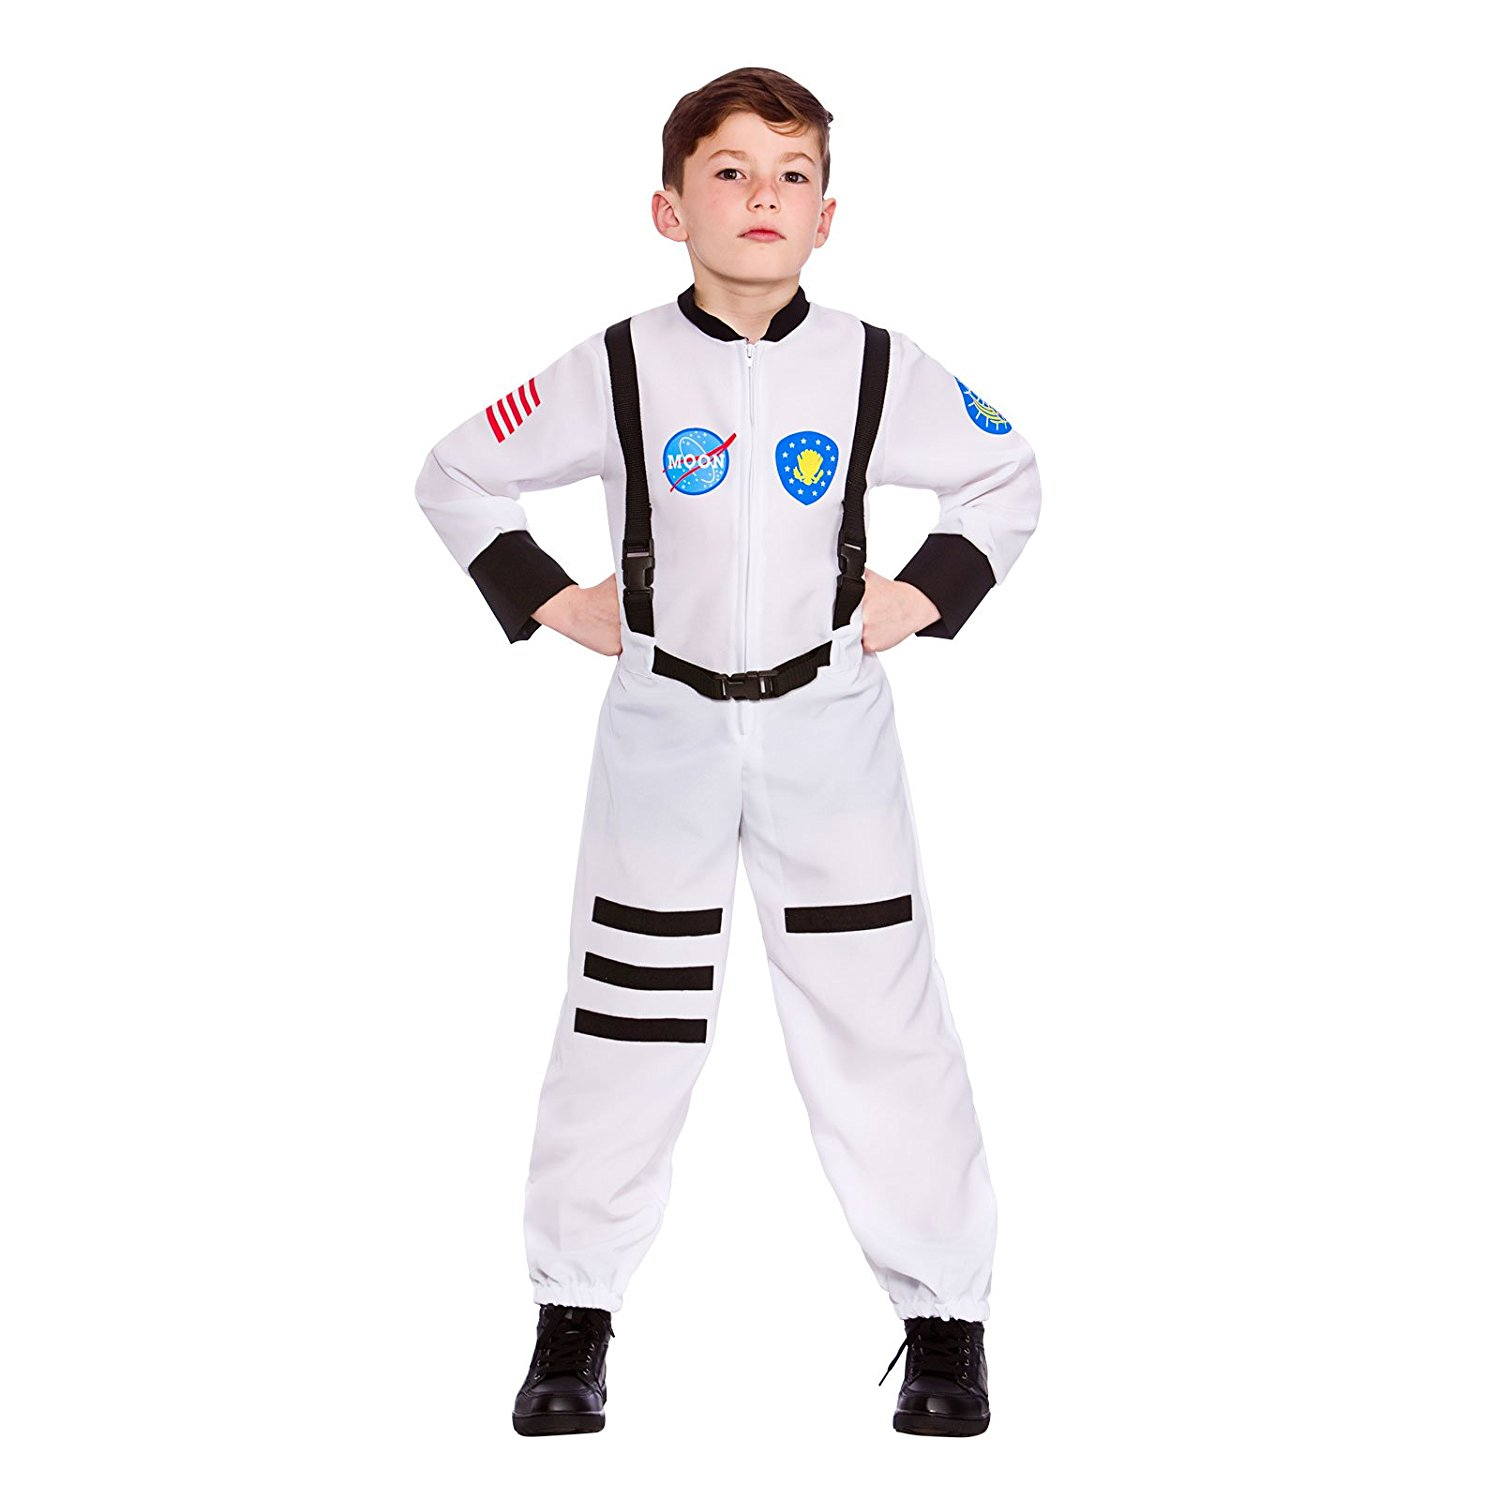 a3b160d0ff0d Get Quotations · Boys Moon Mission Astronaut Fancy Dress Up Party Costume  Halloween Child Outfit